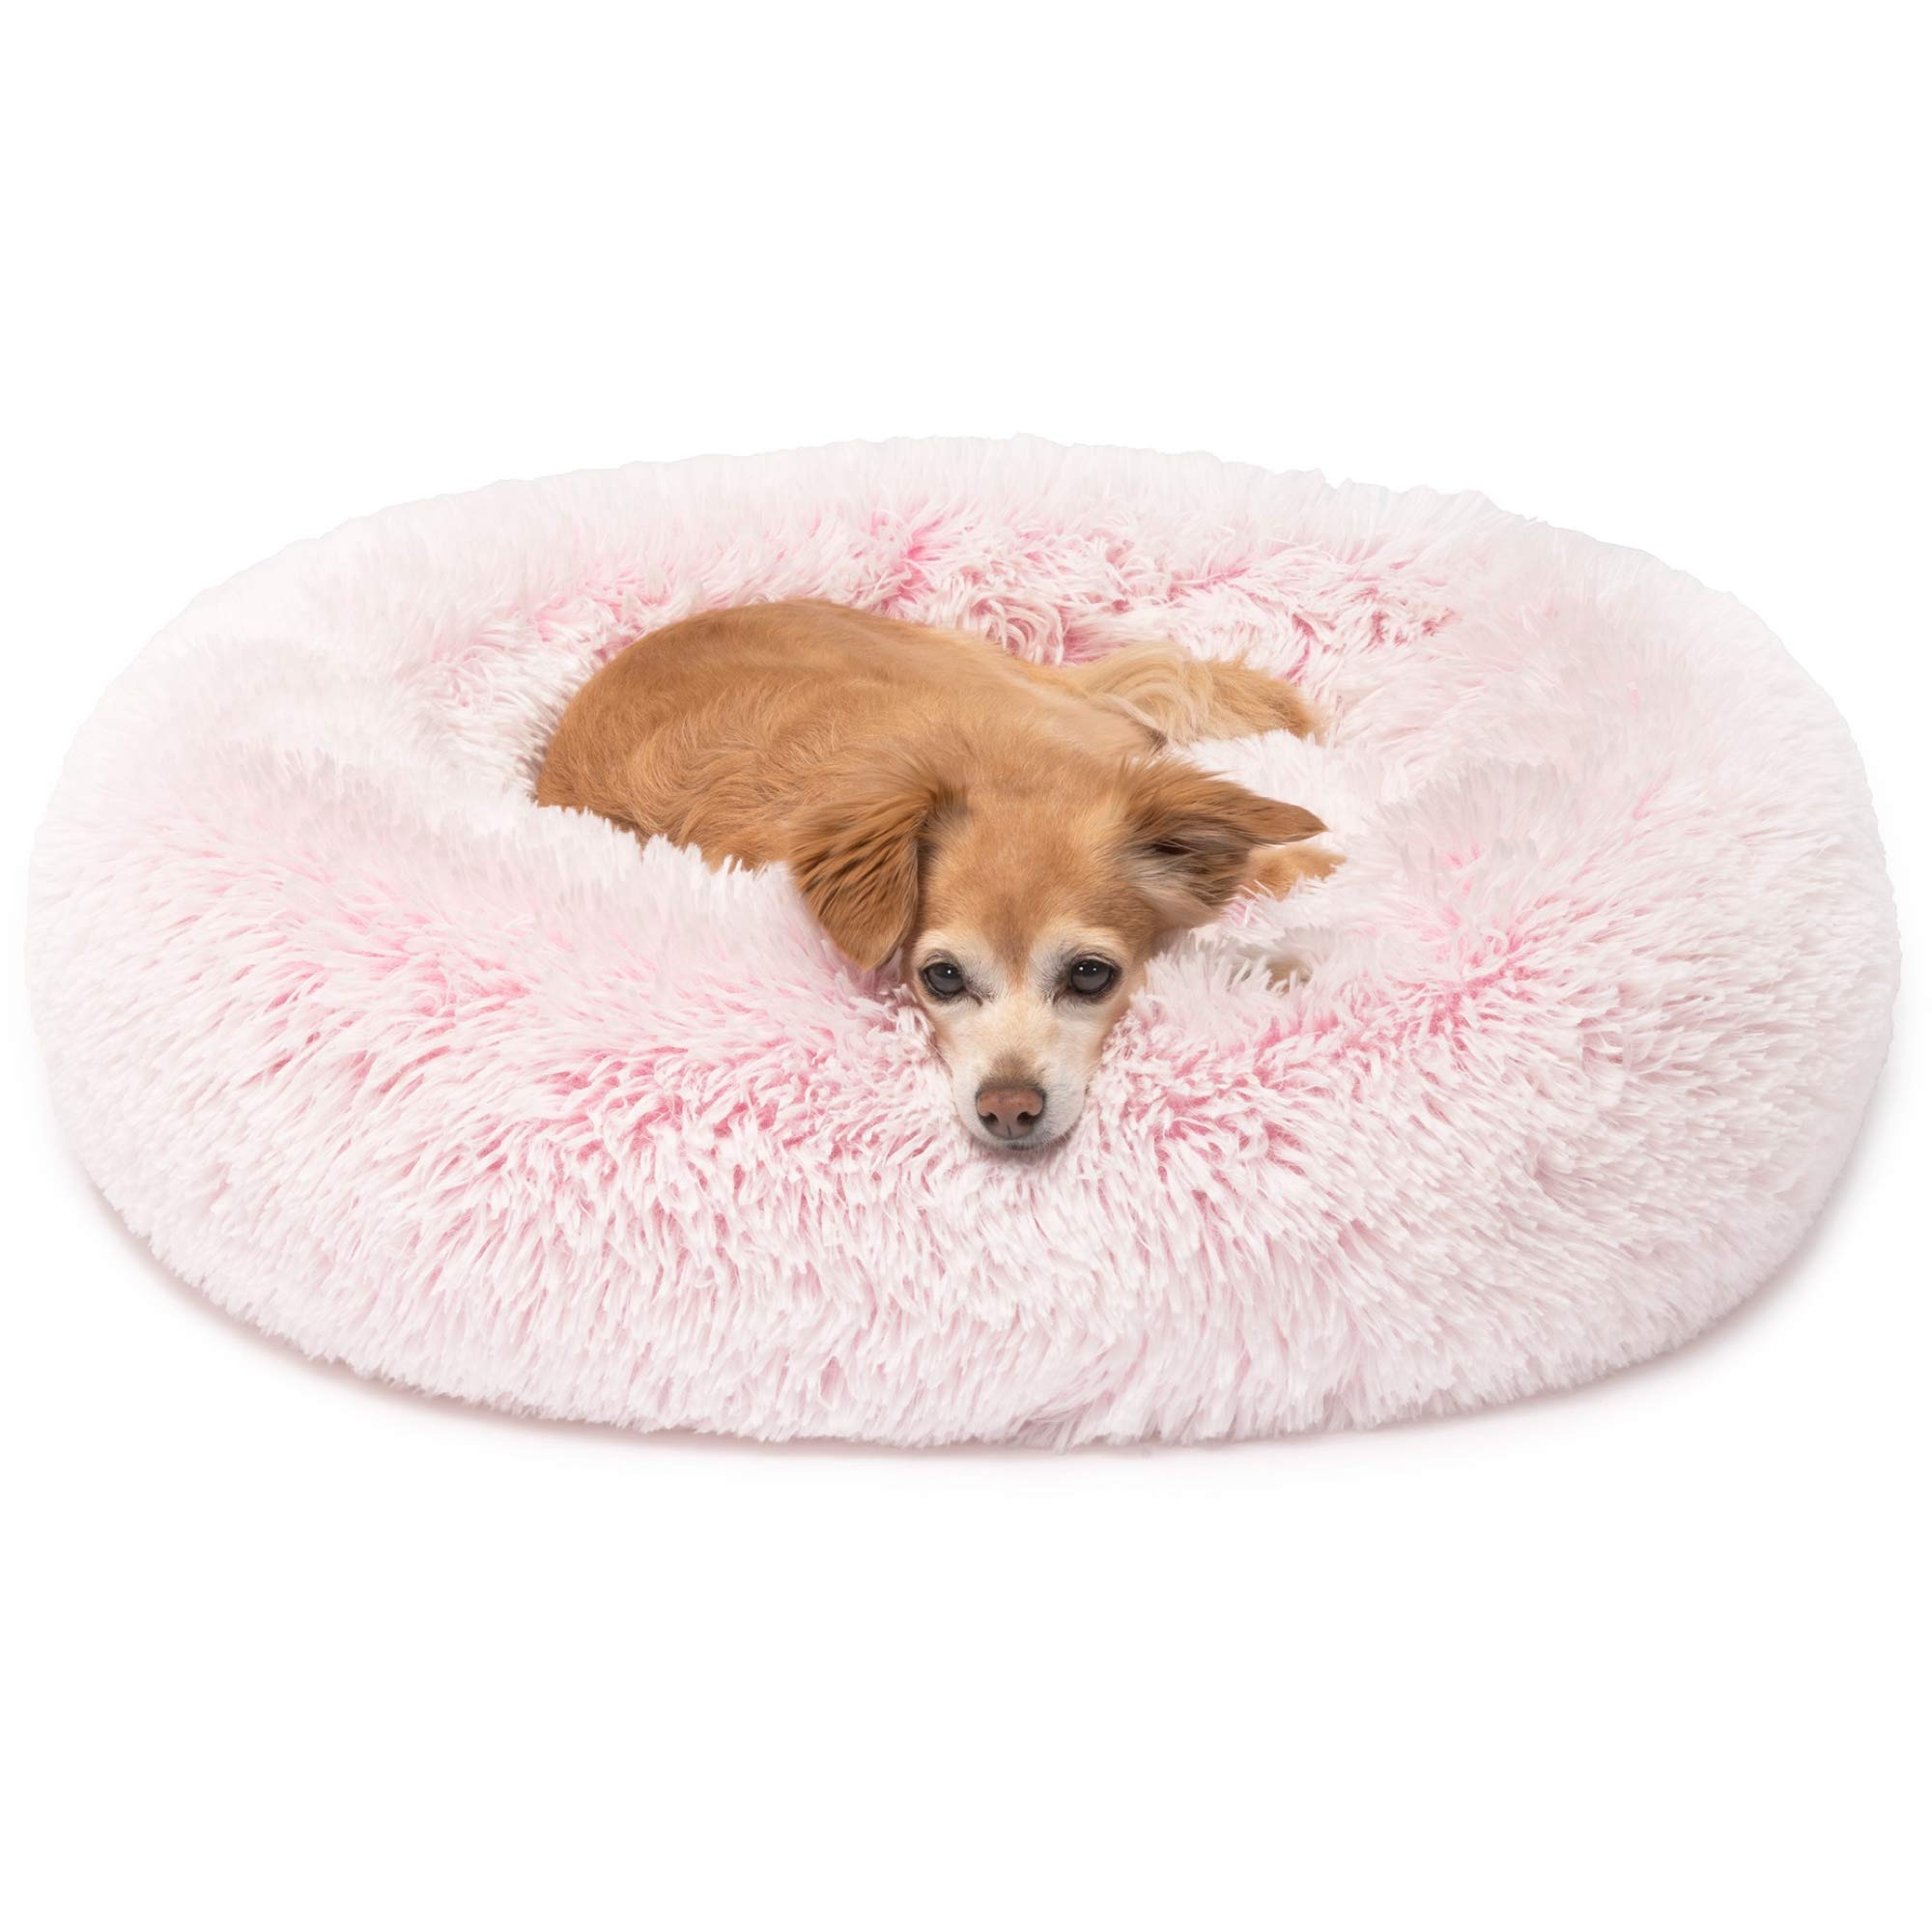 Cute Snuggle Pink Dog Bed Cuddler, Round Donut Pet Beds for Small Cat to Medium Dogs, Small Pink by Friends Forever